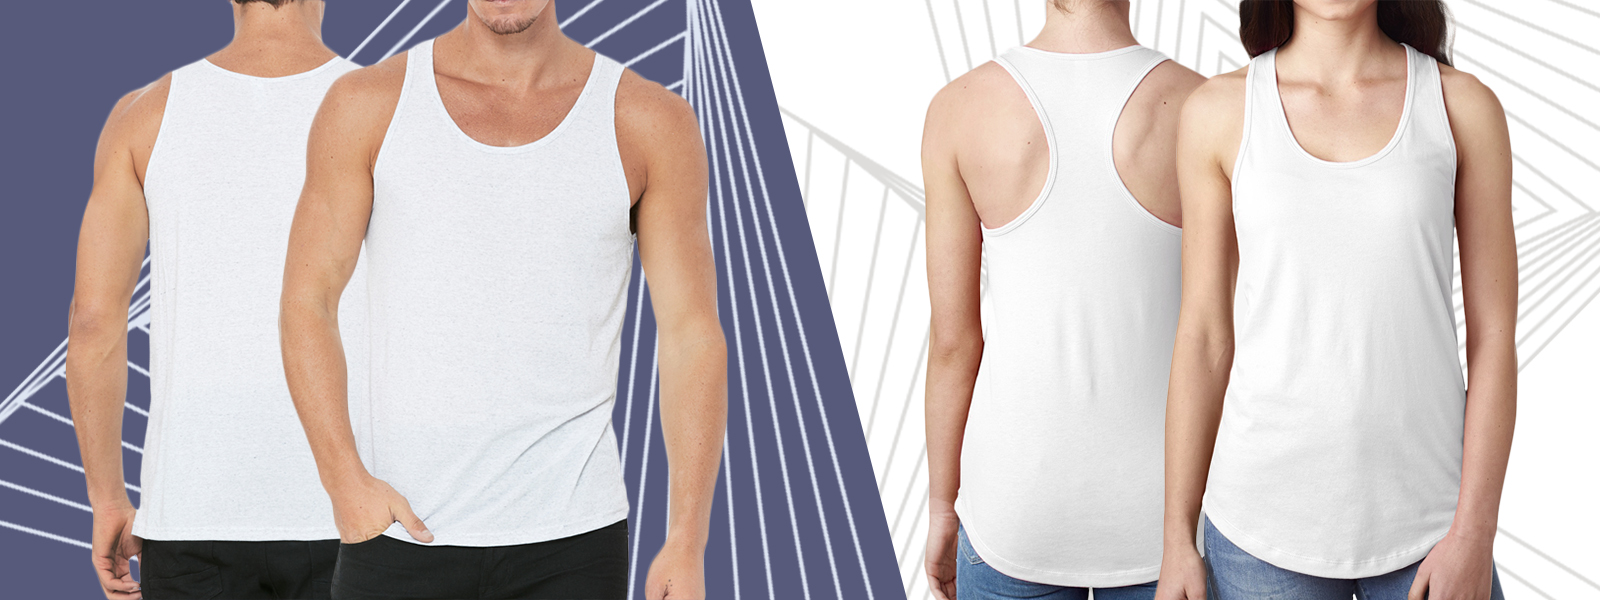 teespedia-banner-tank-top-category.jpg